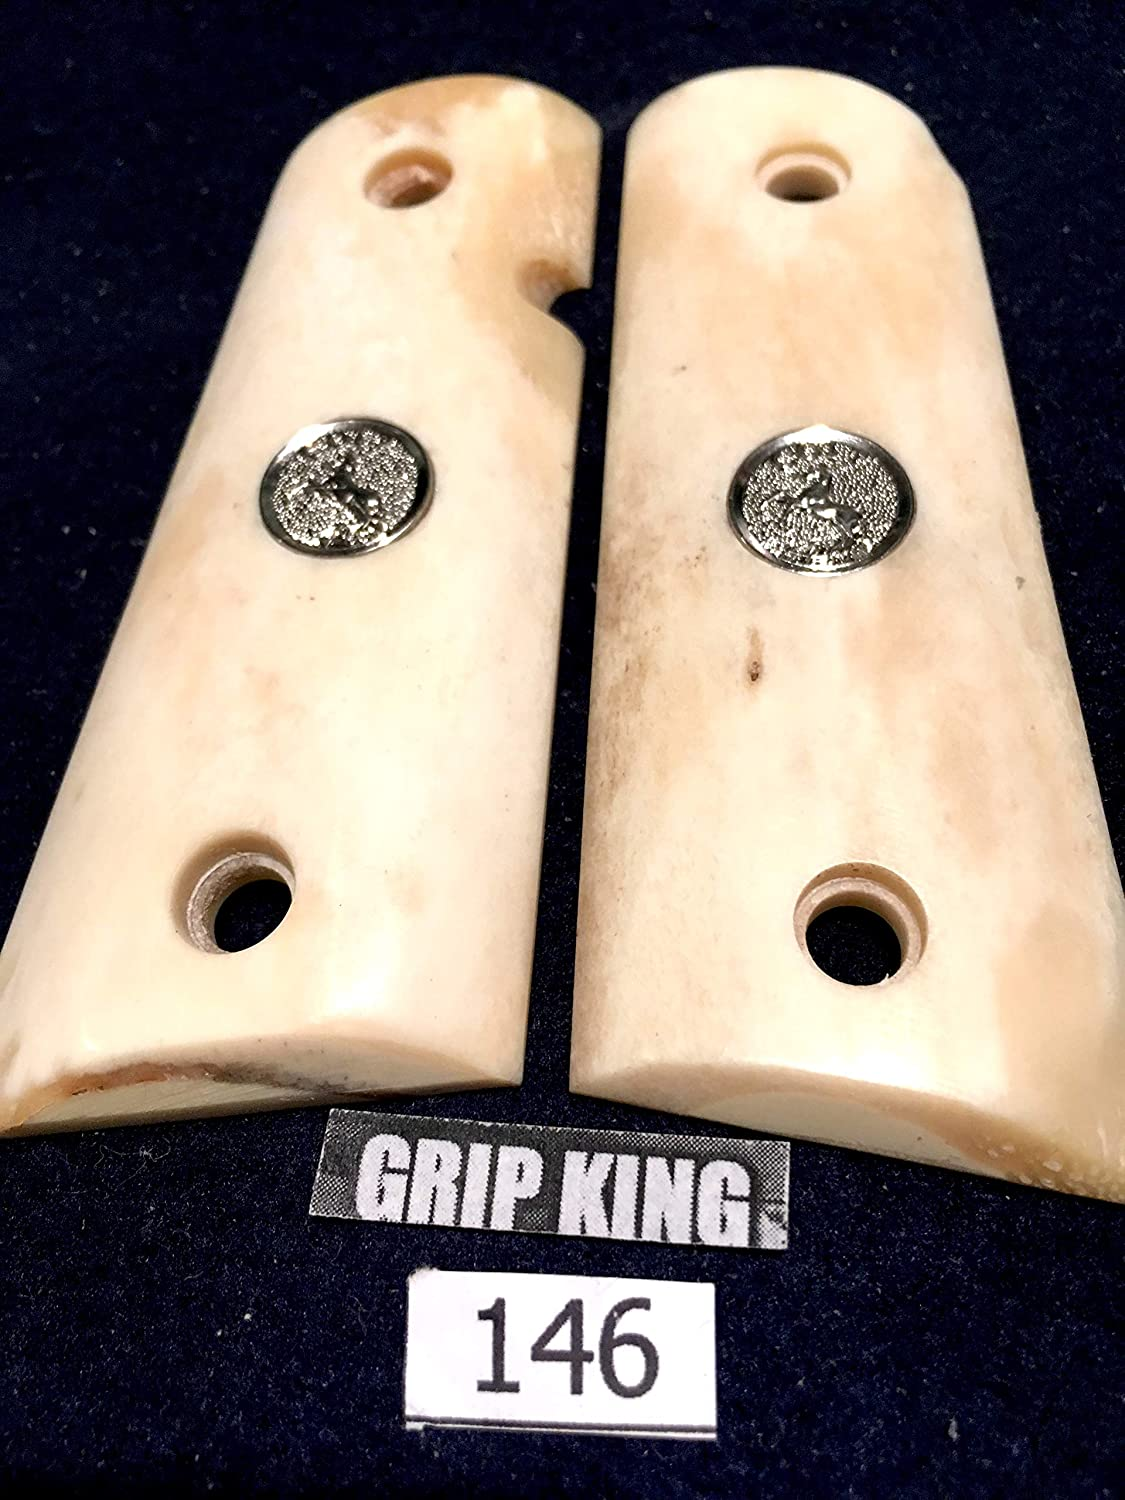 1911 compact grips #146, fits 3-4 inch barrel Colt Officers, Defenders,Genuine Buffalo Bone. SALE $43.88